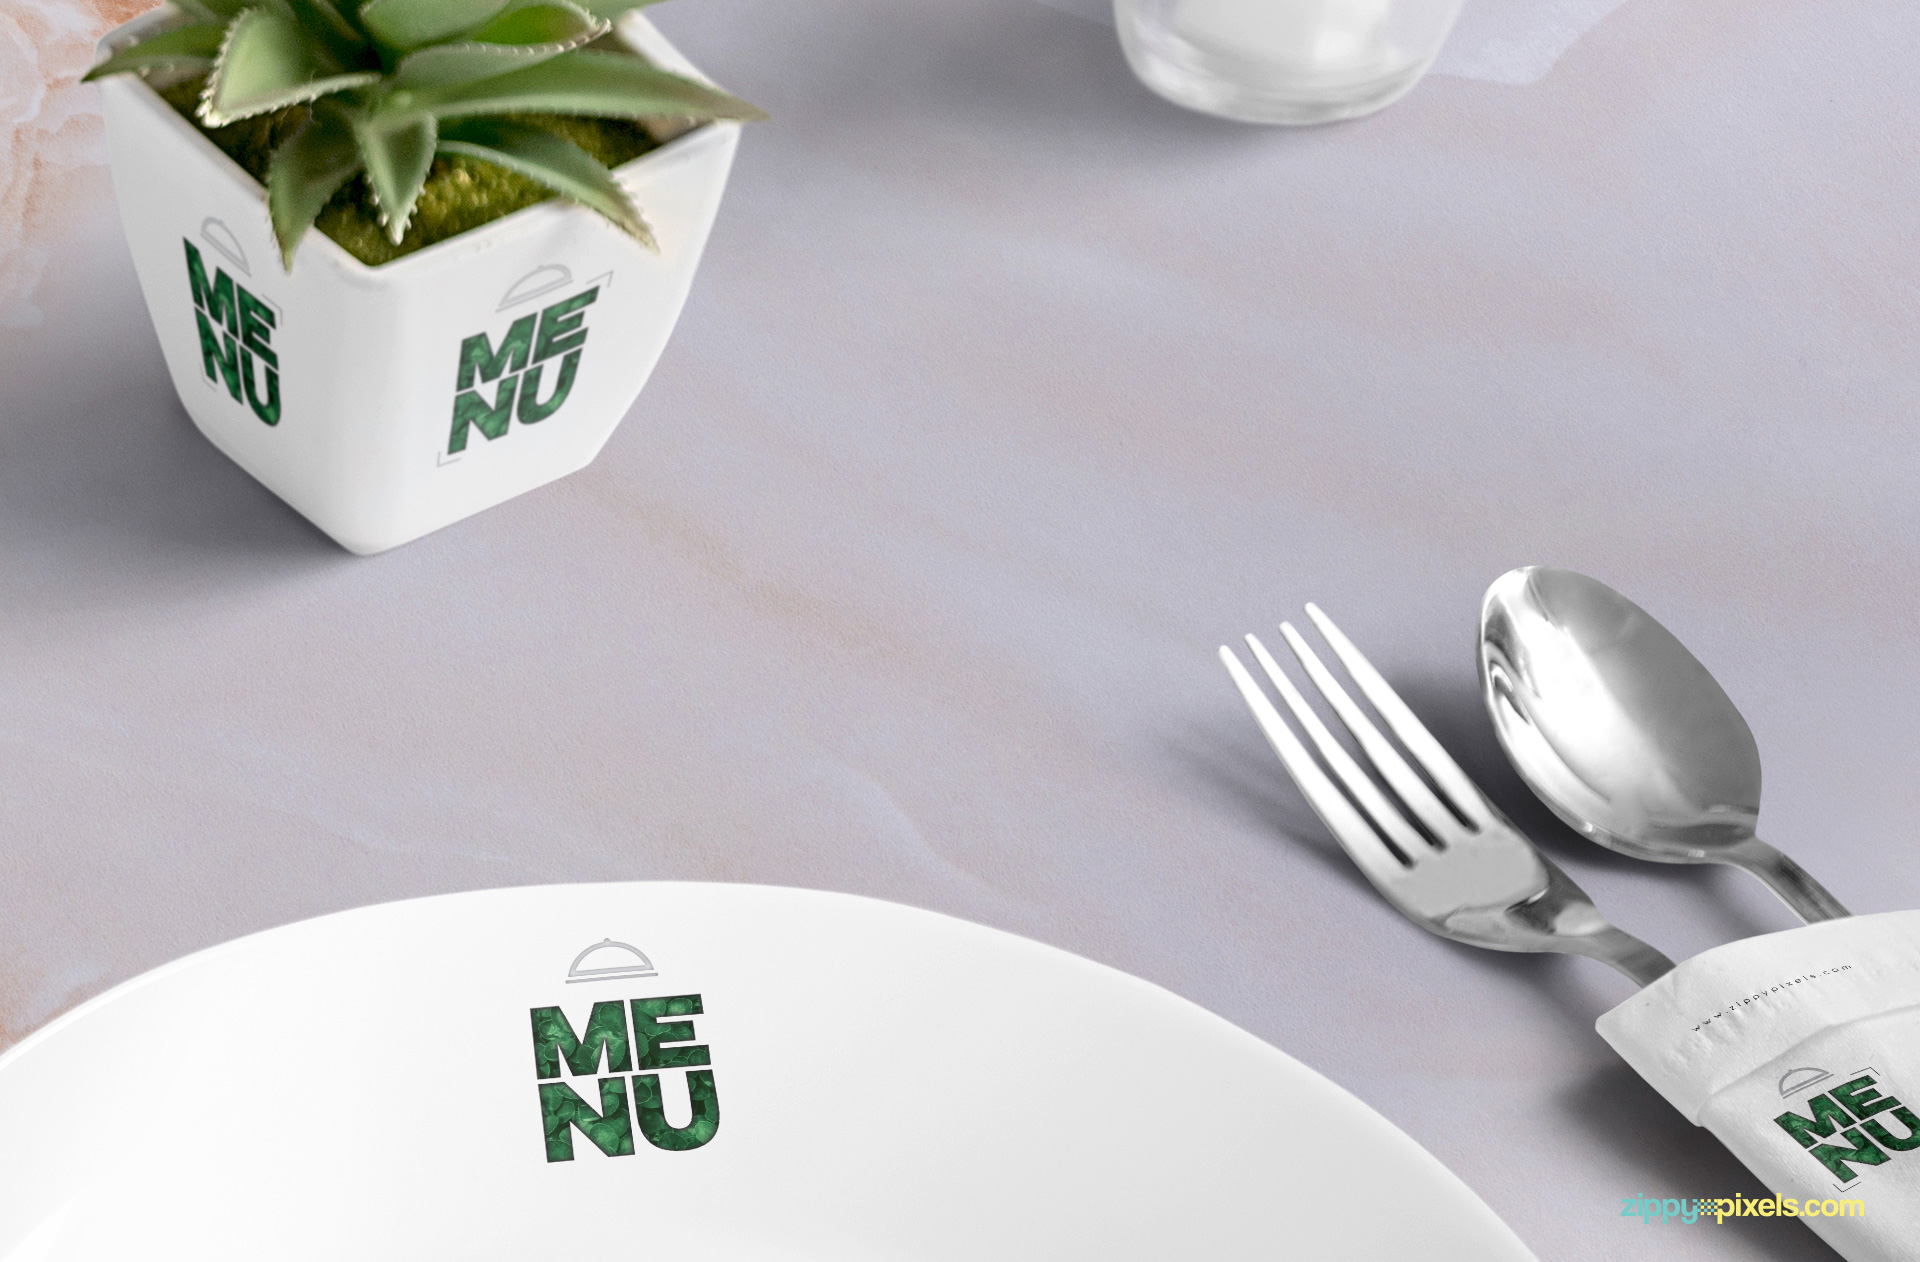 Plant pot, plate and napkin have separate smart objects for designs.